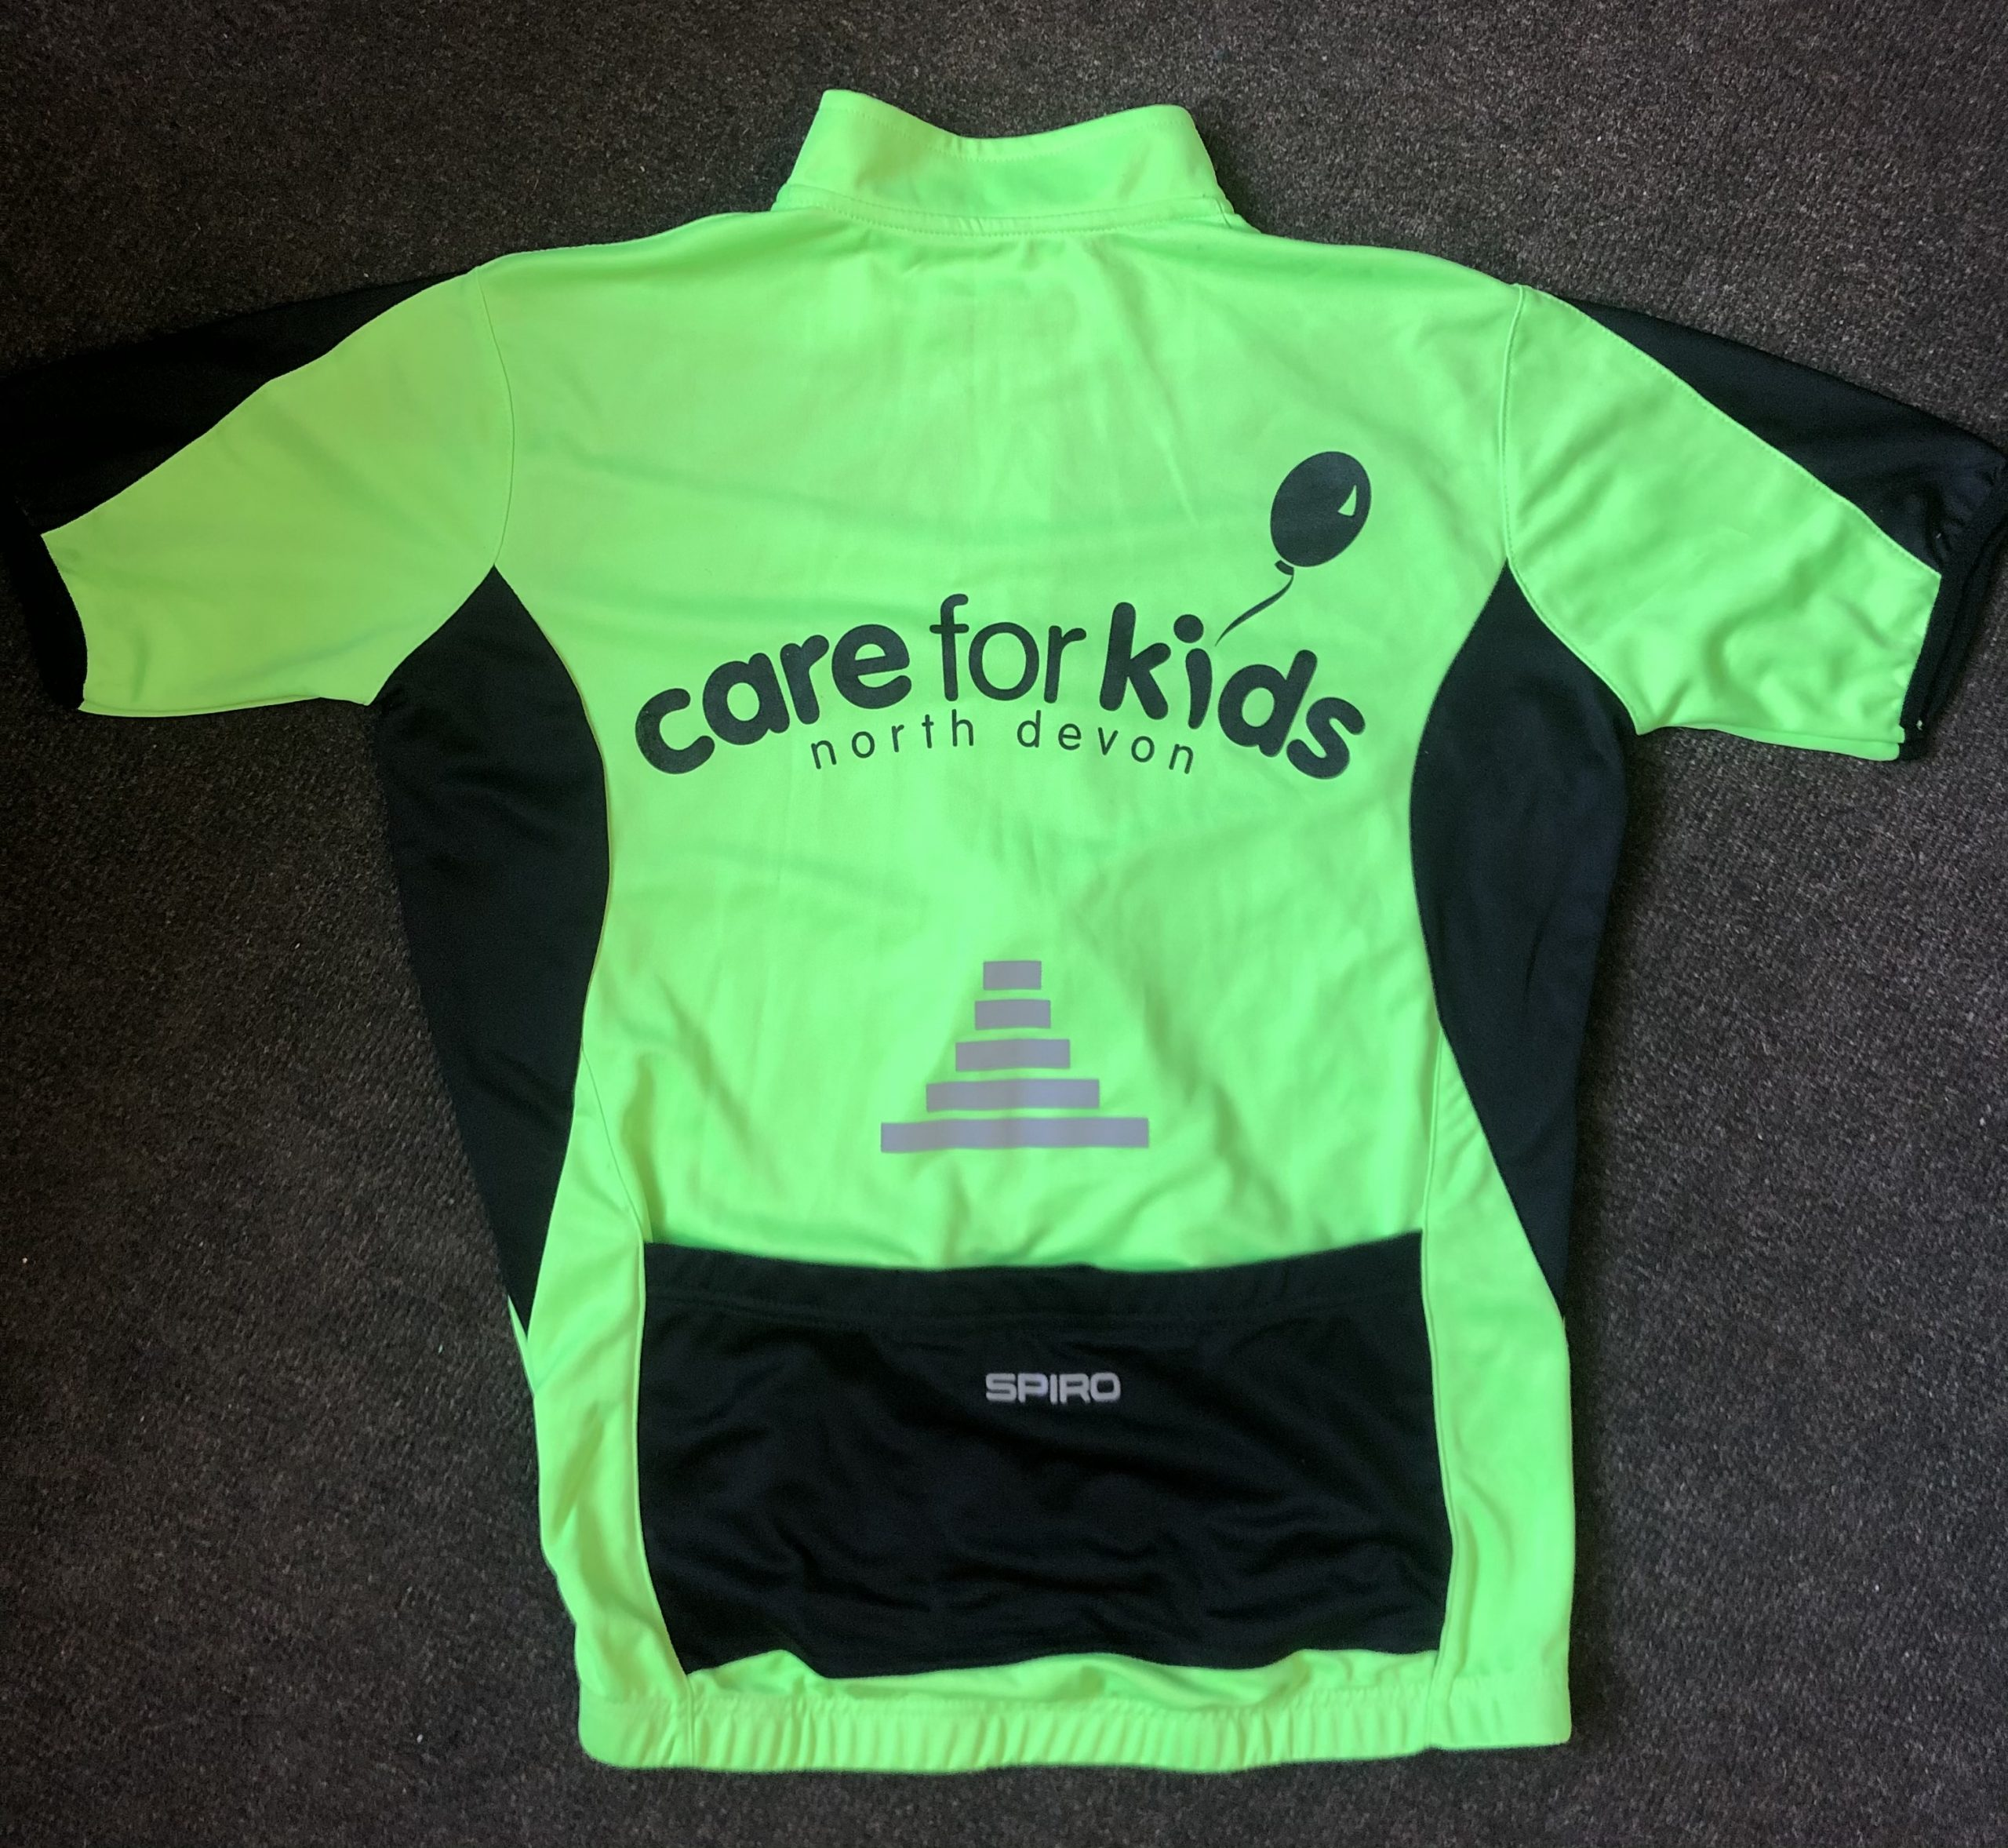 Cycling jersey back showing logo and pocket